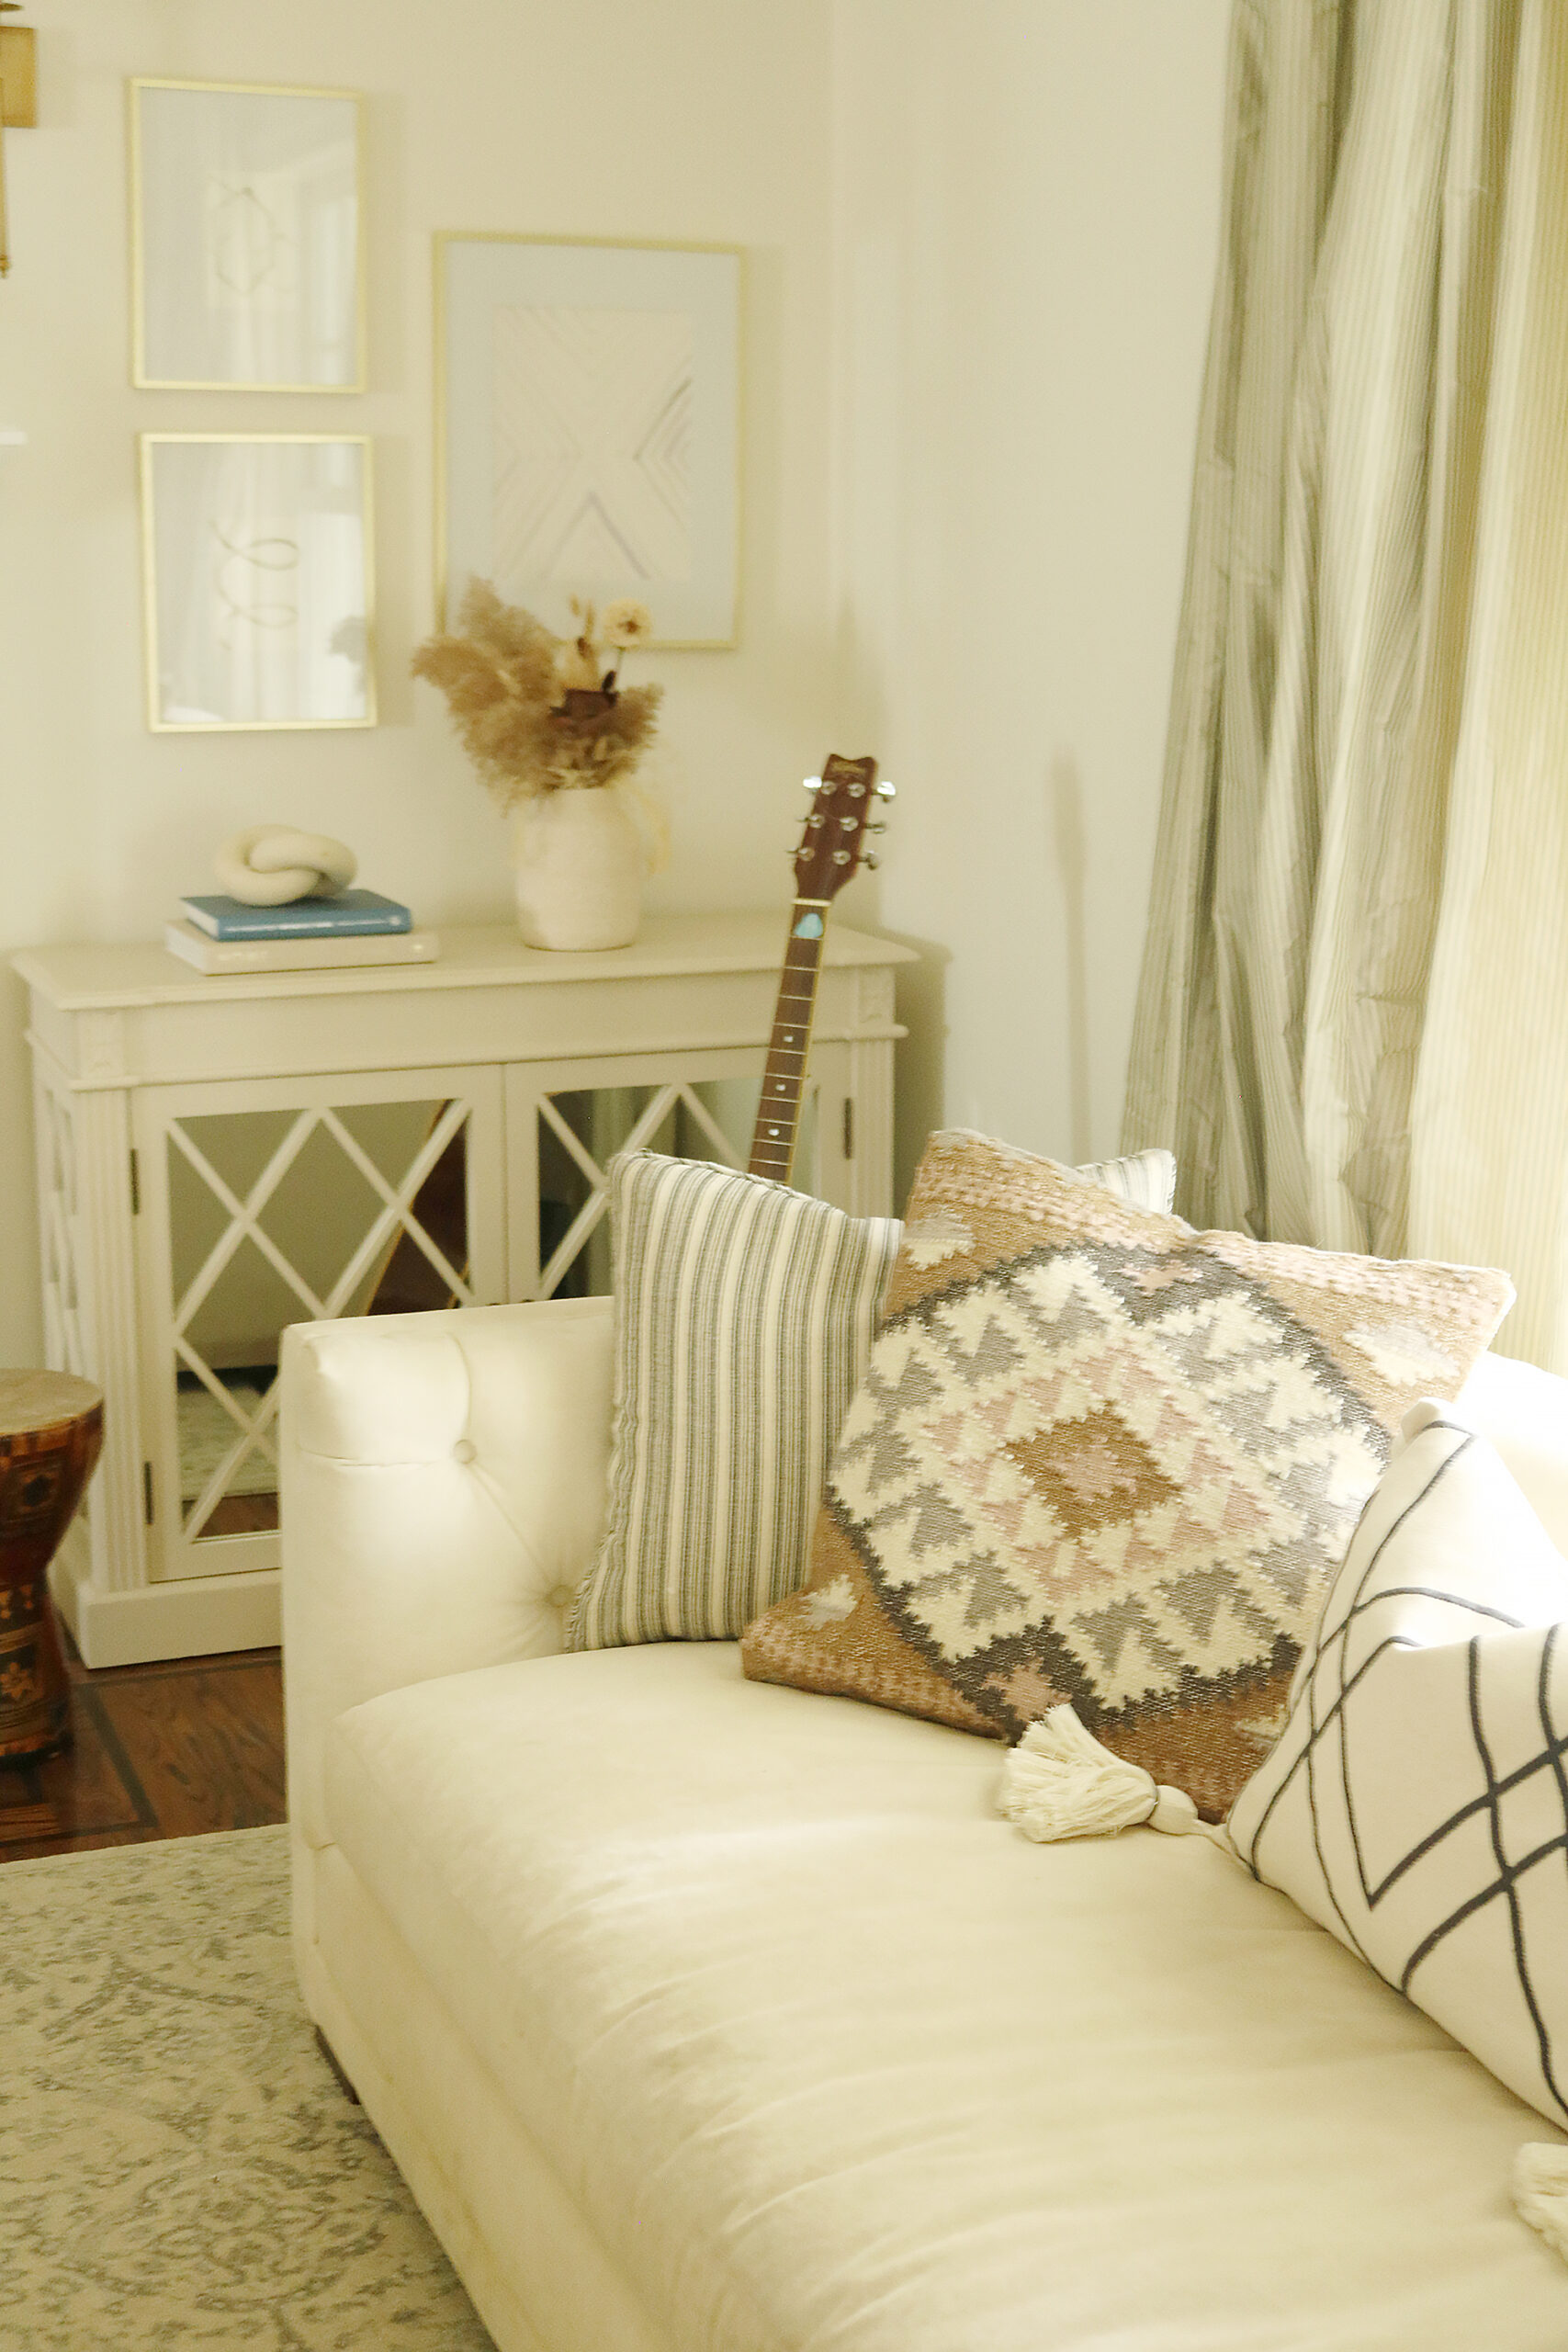 Easy Fall decorations that are simple and minimal but brings that home comfort and cozy look.  HM pillows. || Darling Darleen Top CT Lifestyle Blogger #falldecor #falldecorations #ctlifestyleblogger #darlingdarleen